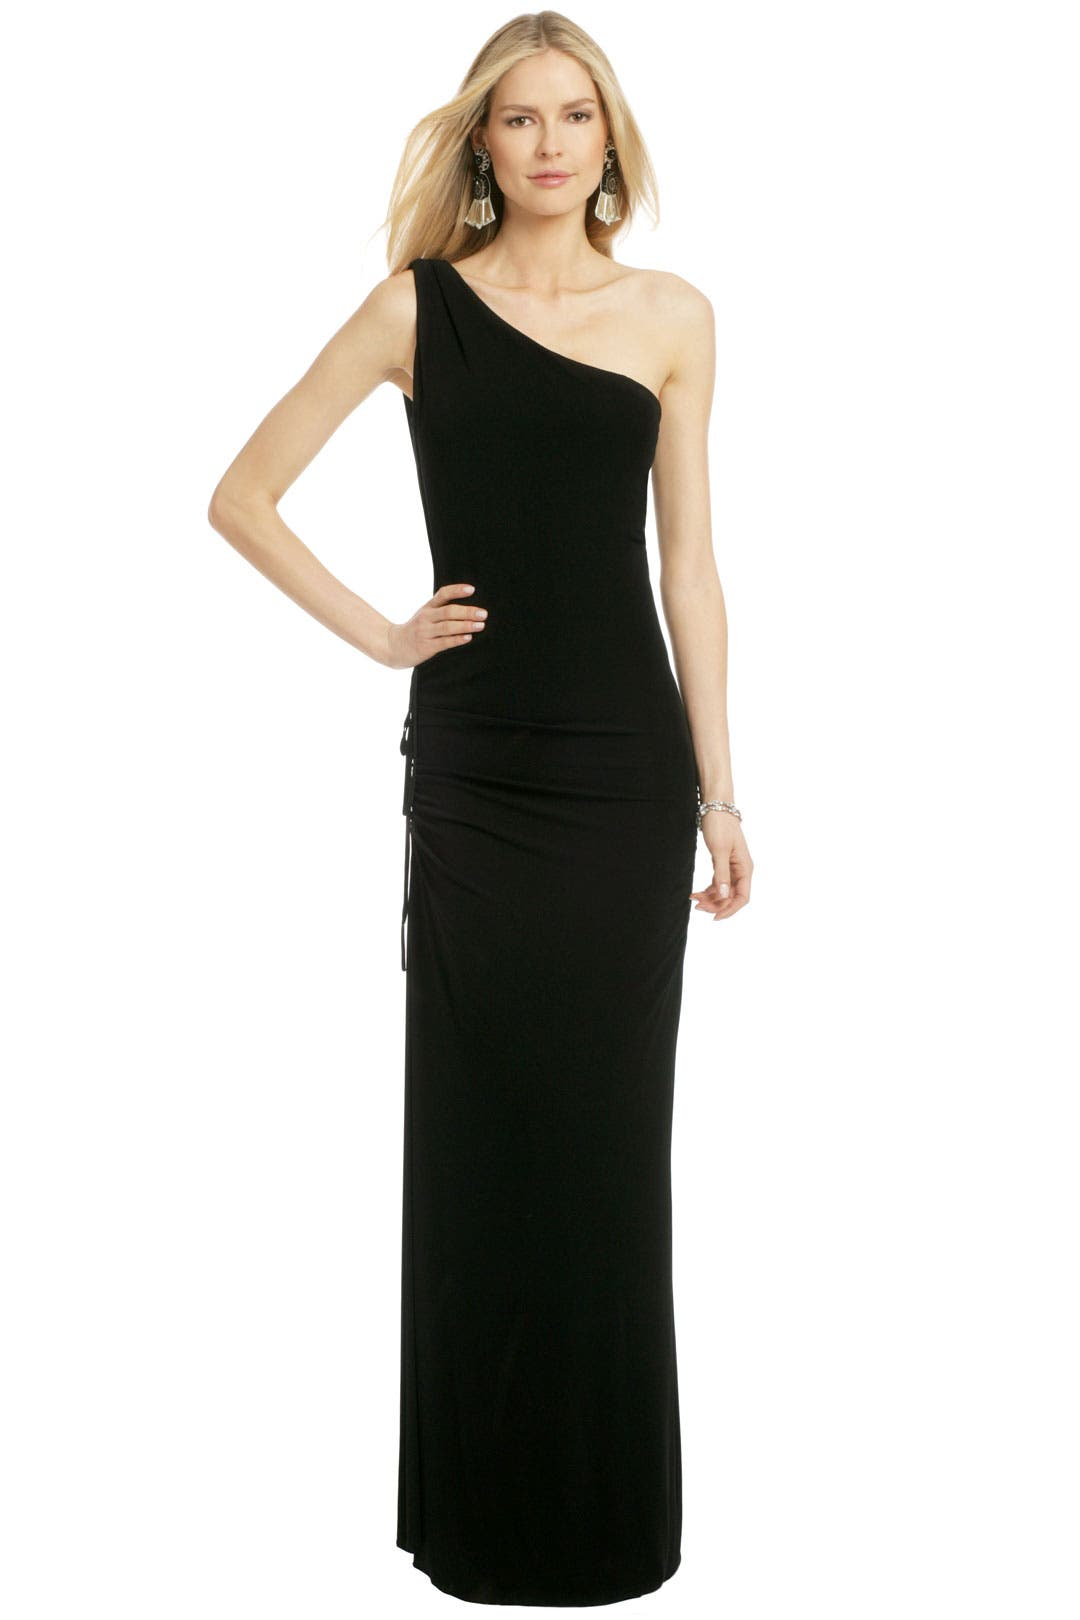 Tie Me Up Gown by Carlos Miele